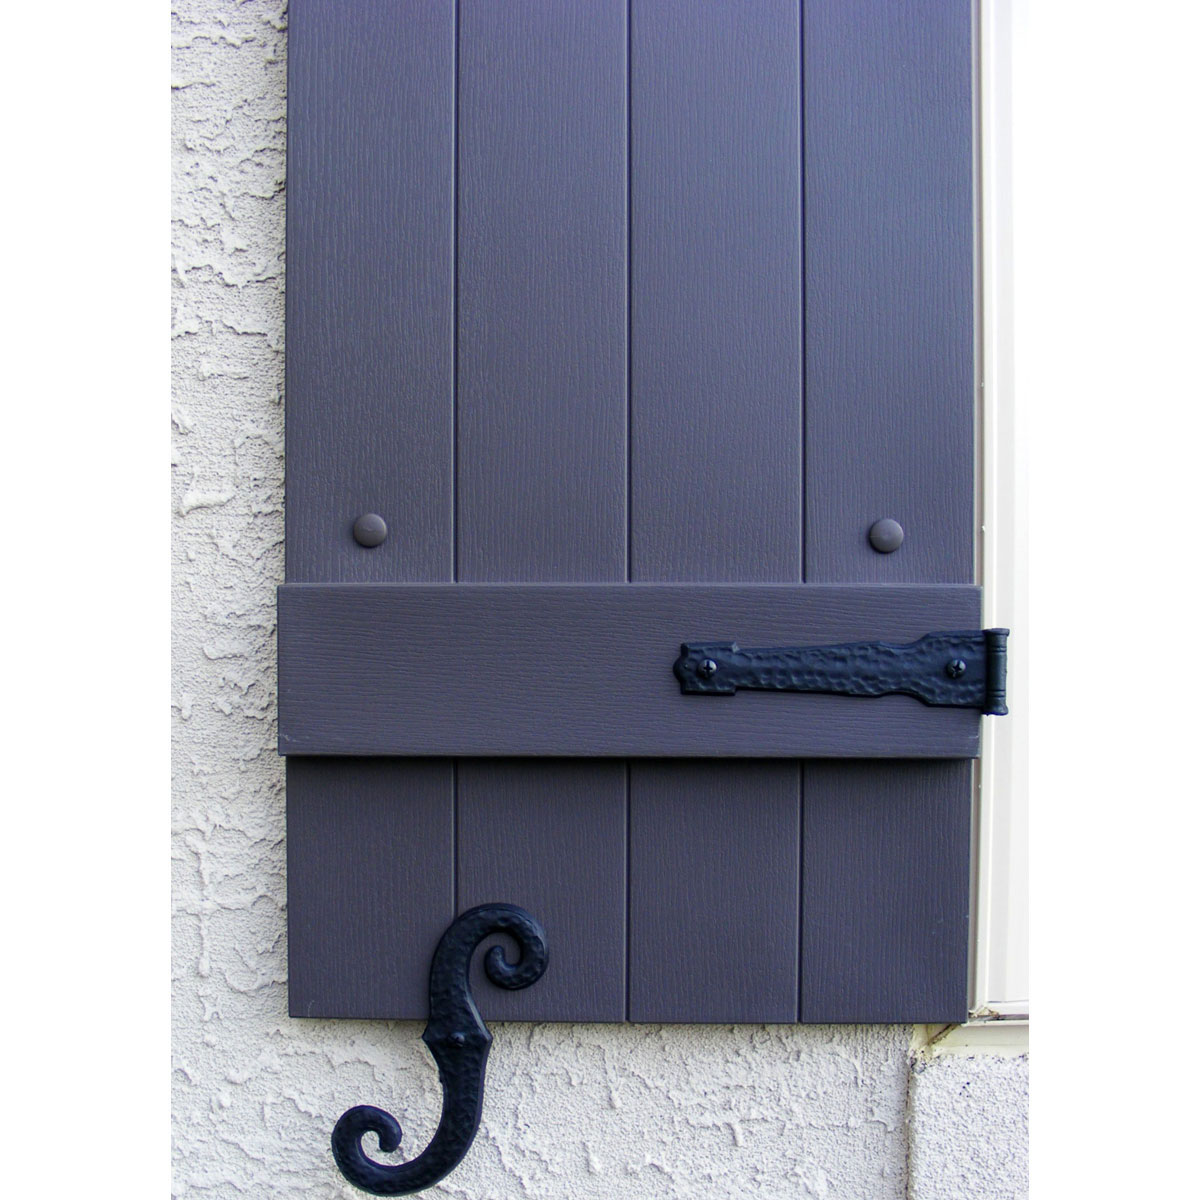 Decorative Vinyl Hinges 4 Hinges 2 S Hooks 002 Black